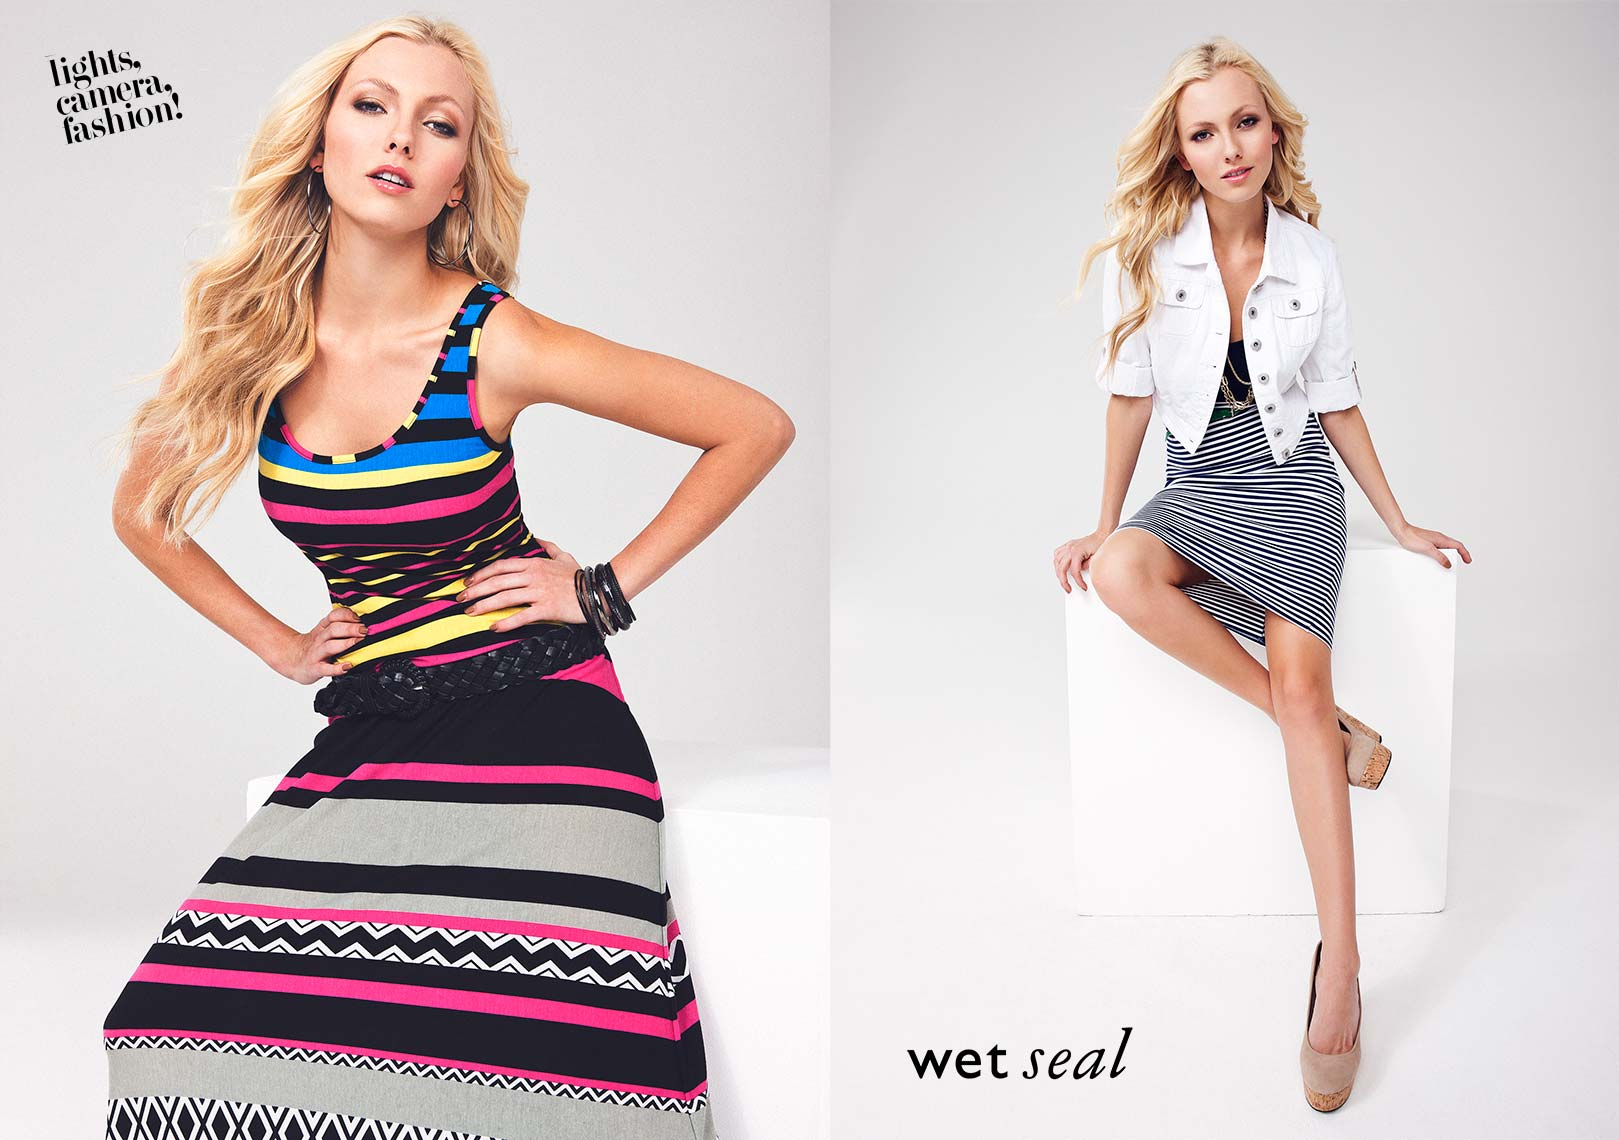 CHRIS-HUNT-FASHION-PHOTOGRAPHY-ADVERTISING-WETSEAL-0484